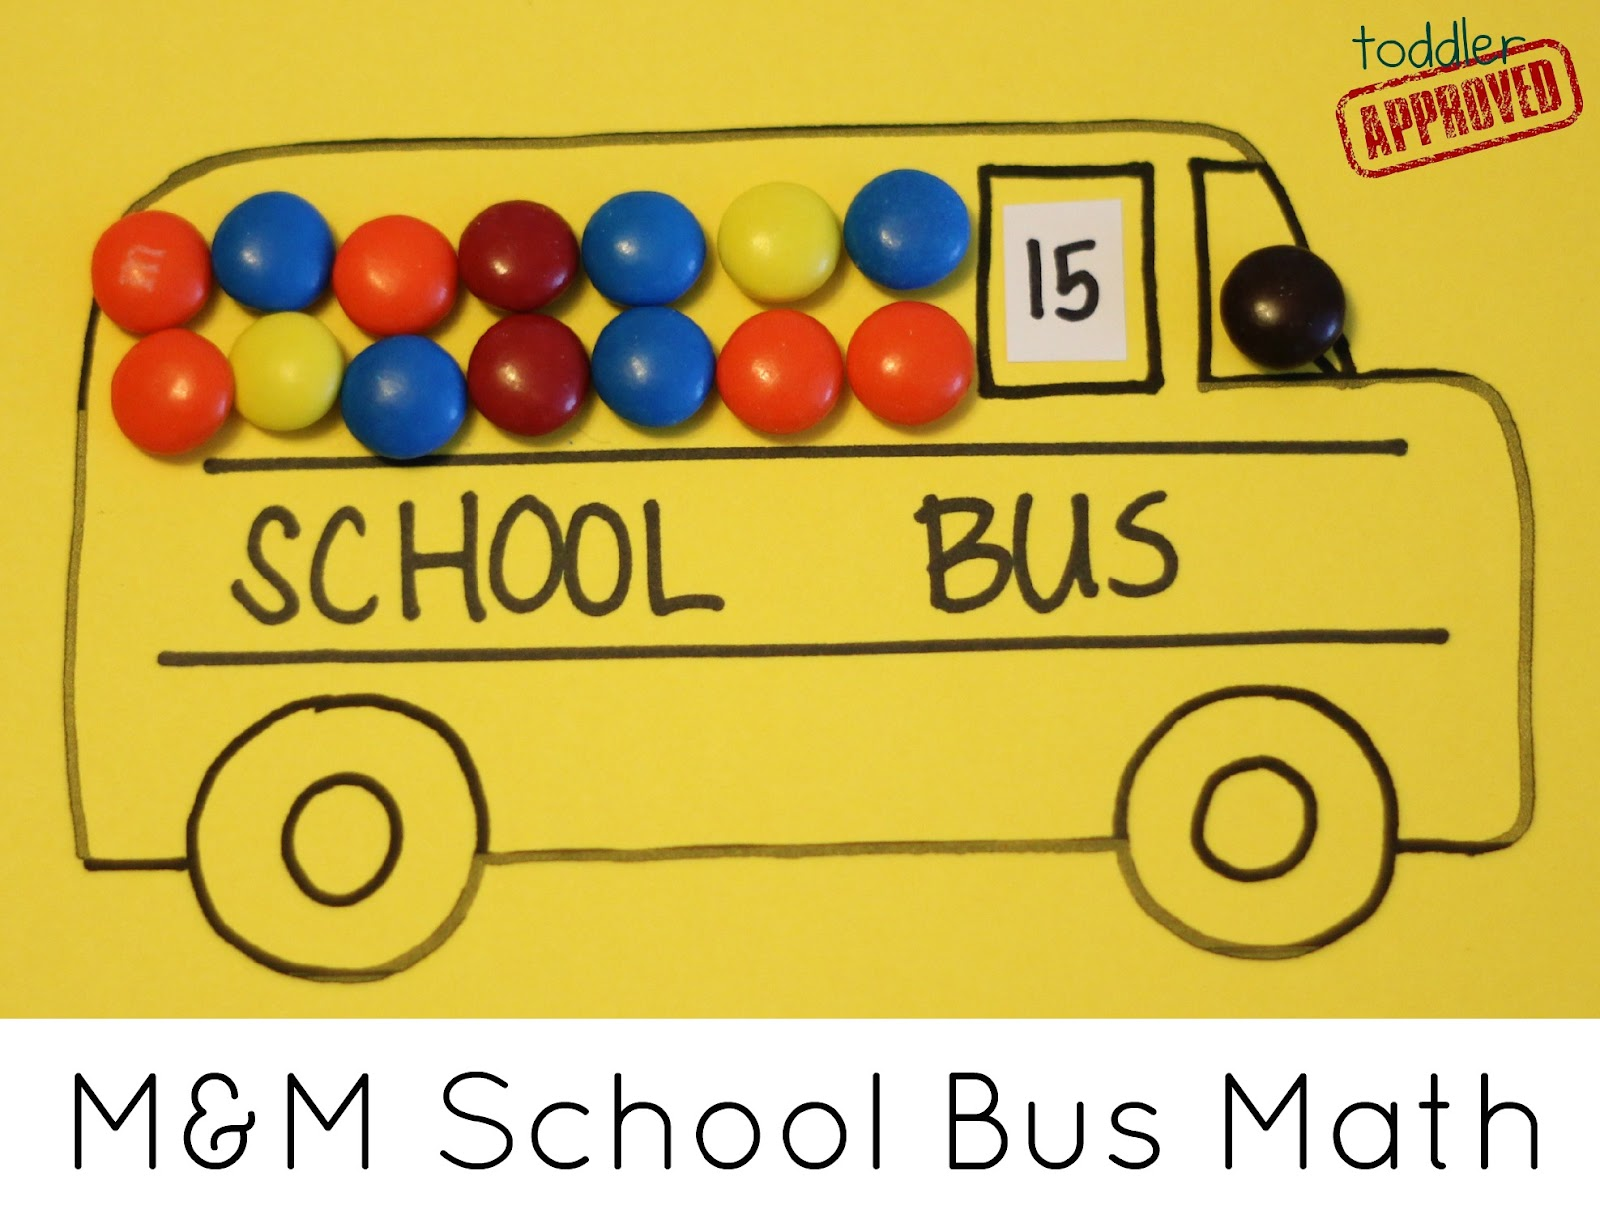 Toddler Approved!: M&M School Bus Math - Back to School Basics